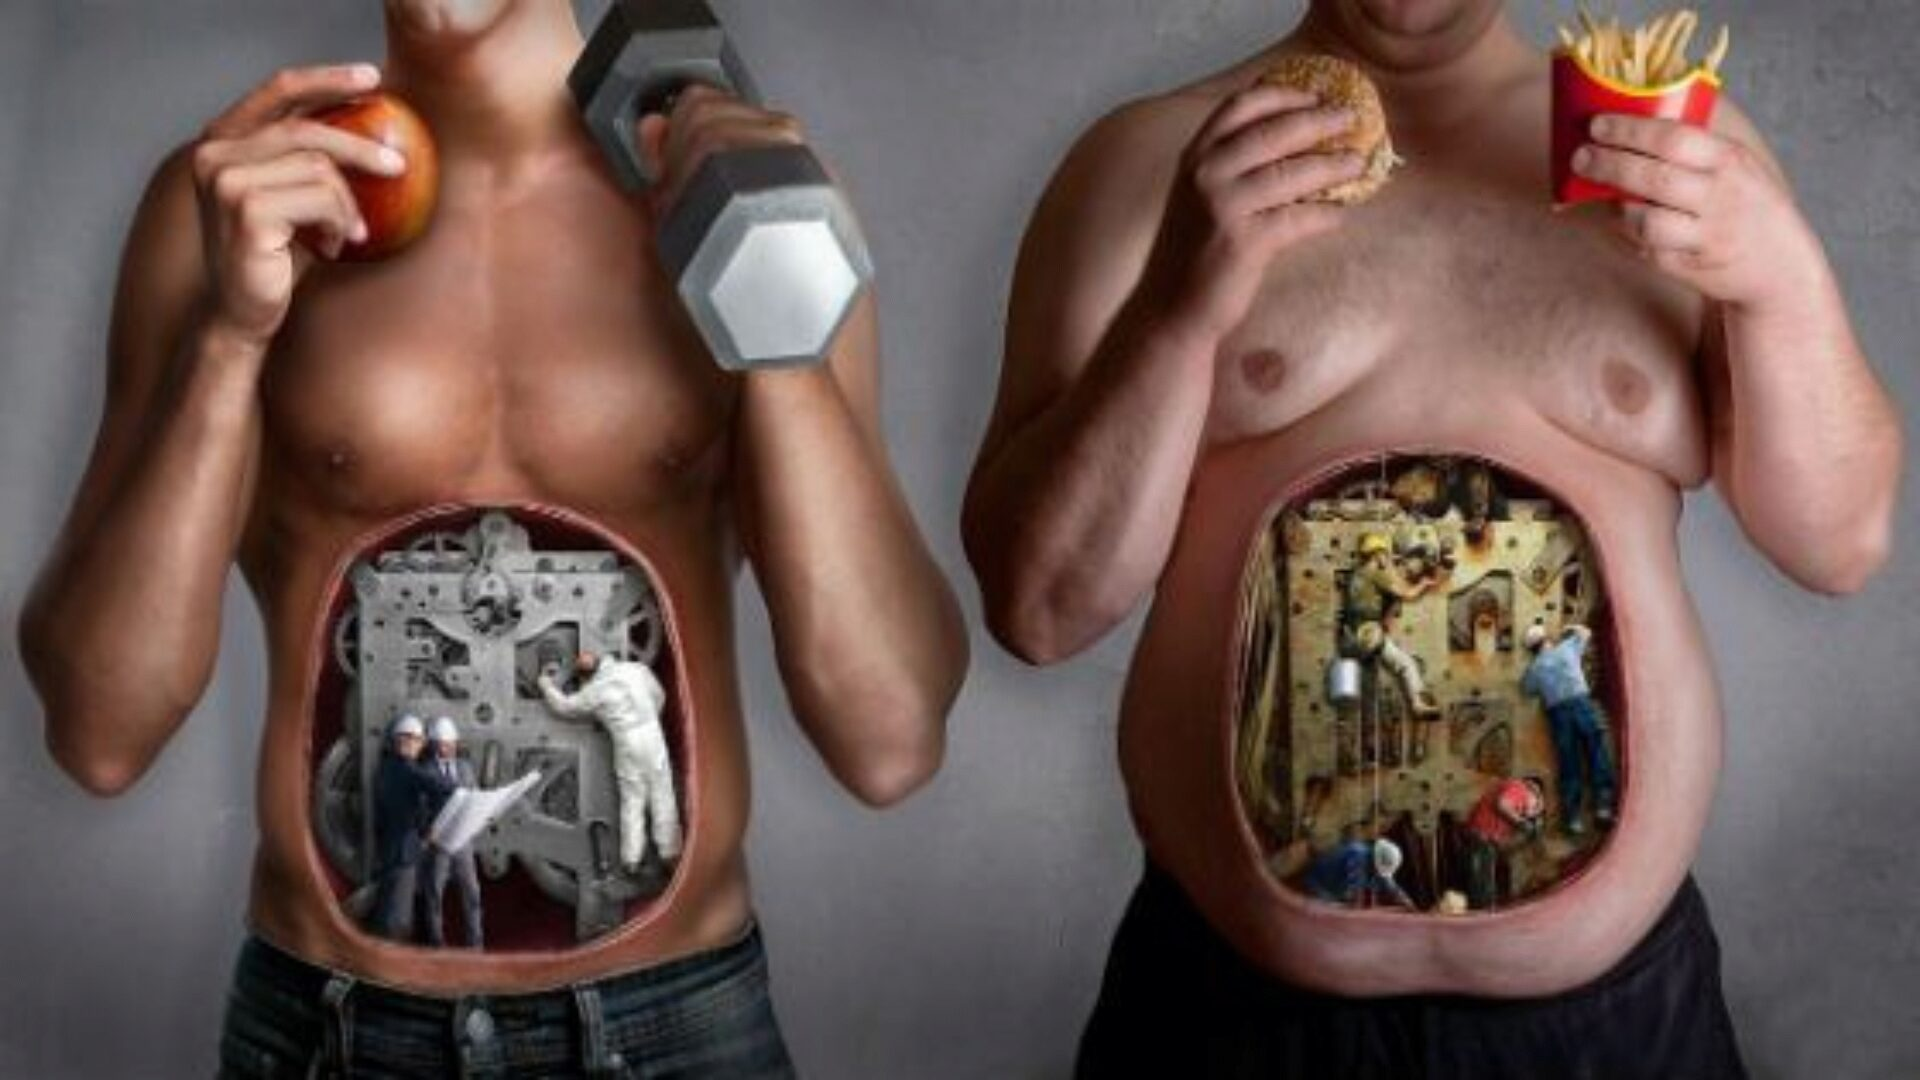 The health of the stomach depends on lifestyle.